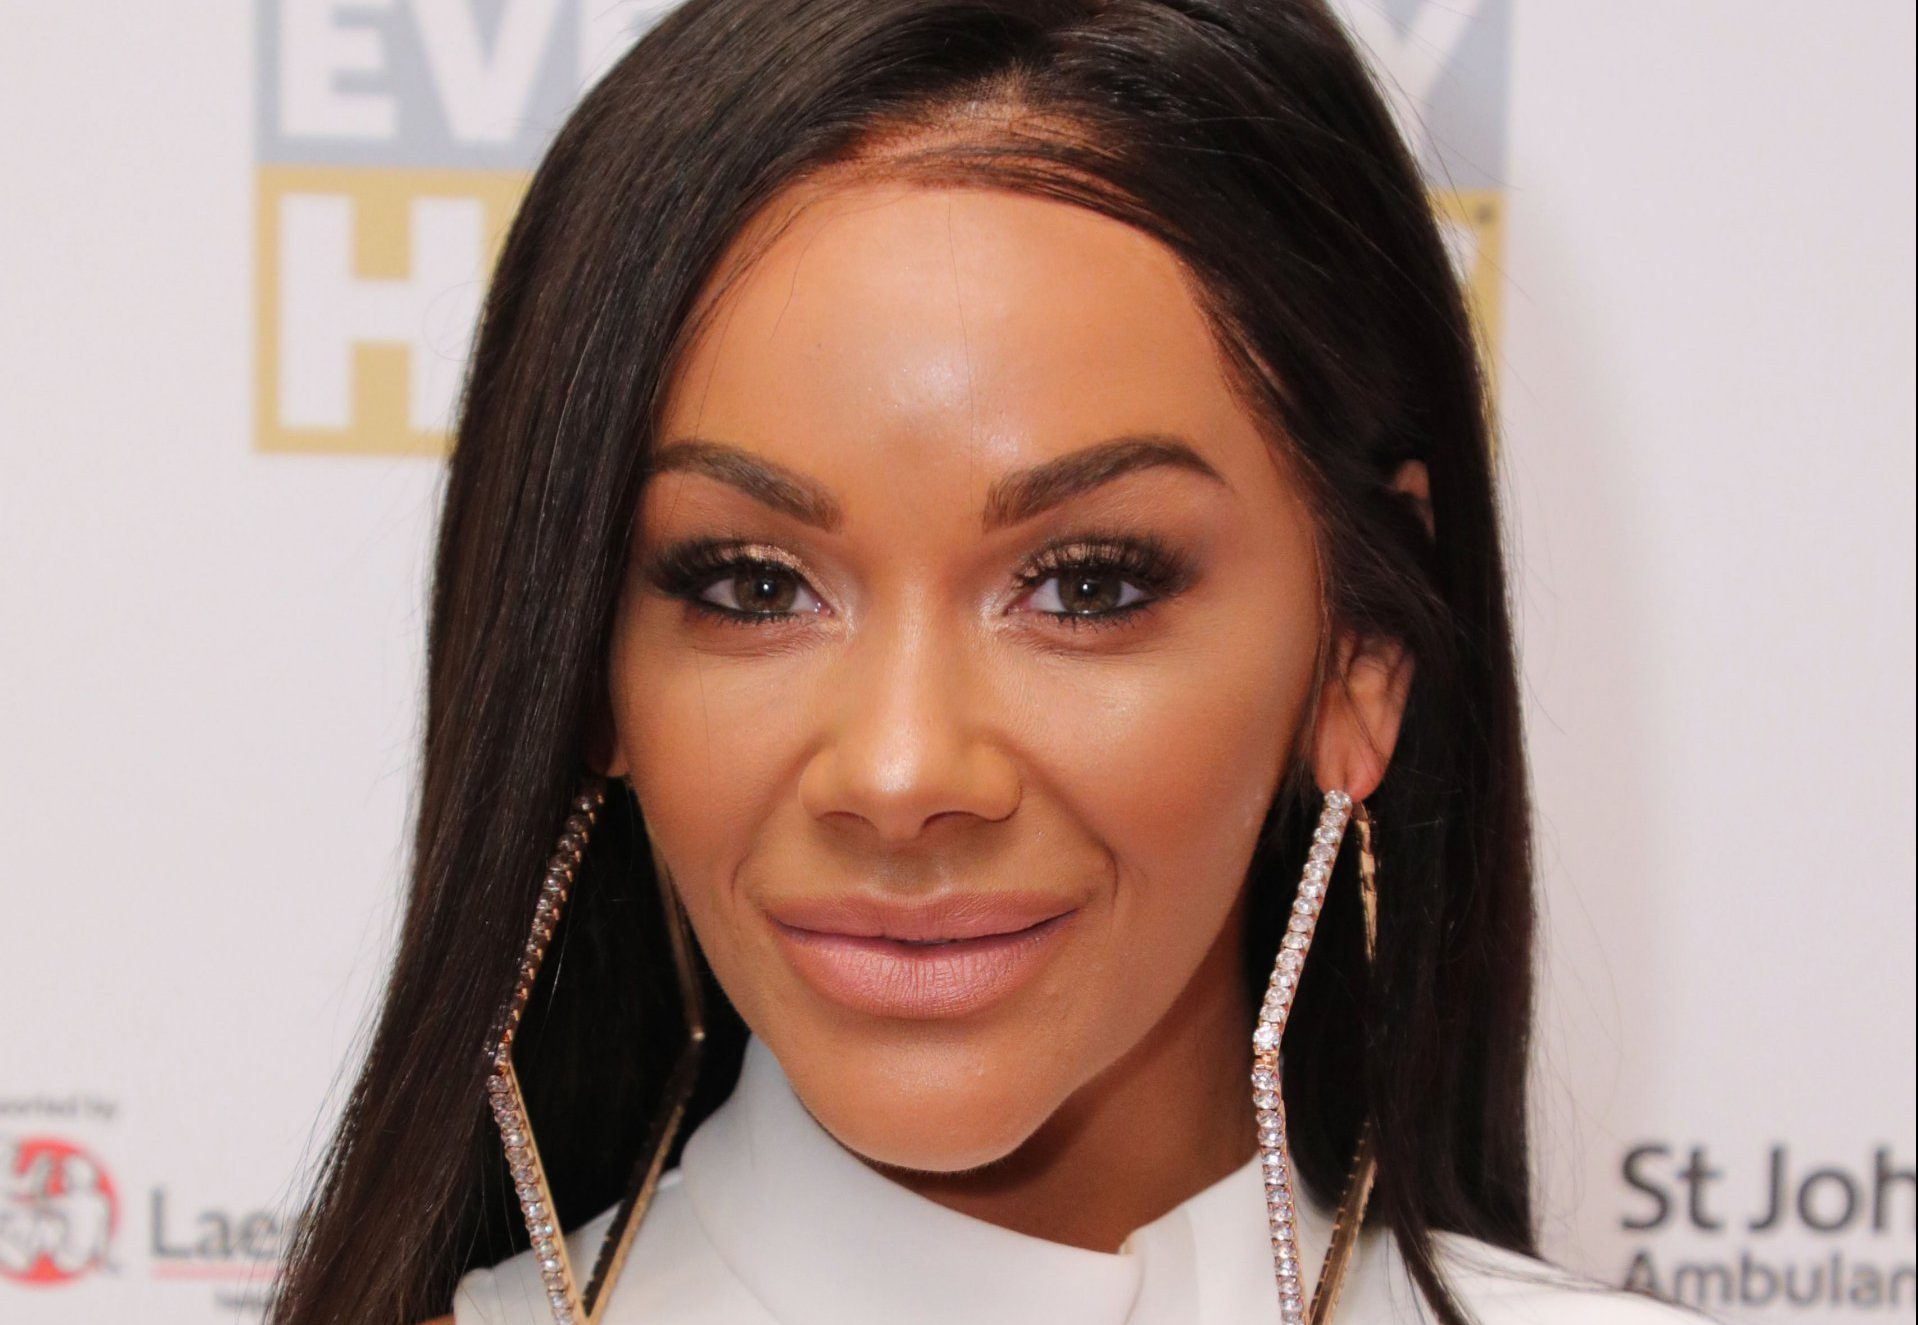 hollyoaks actress chelsee healey